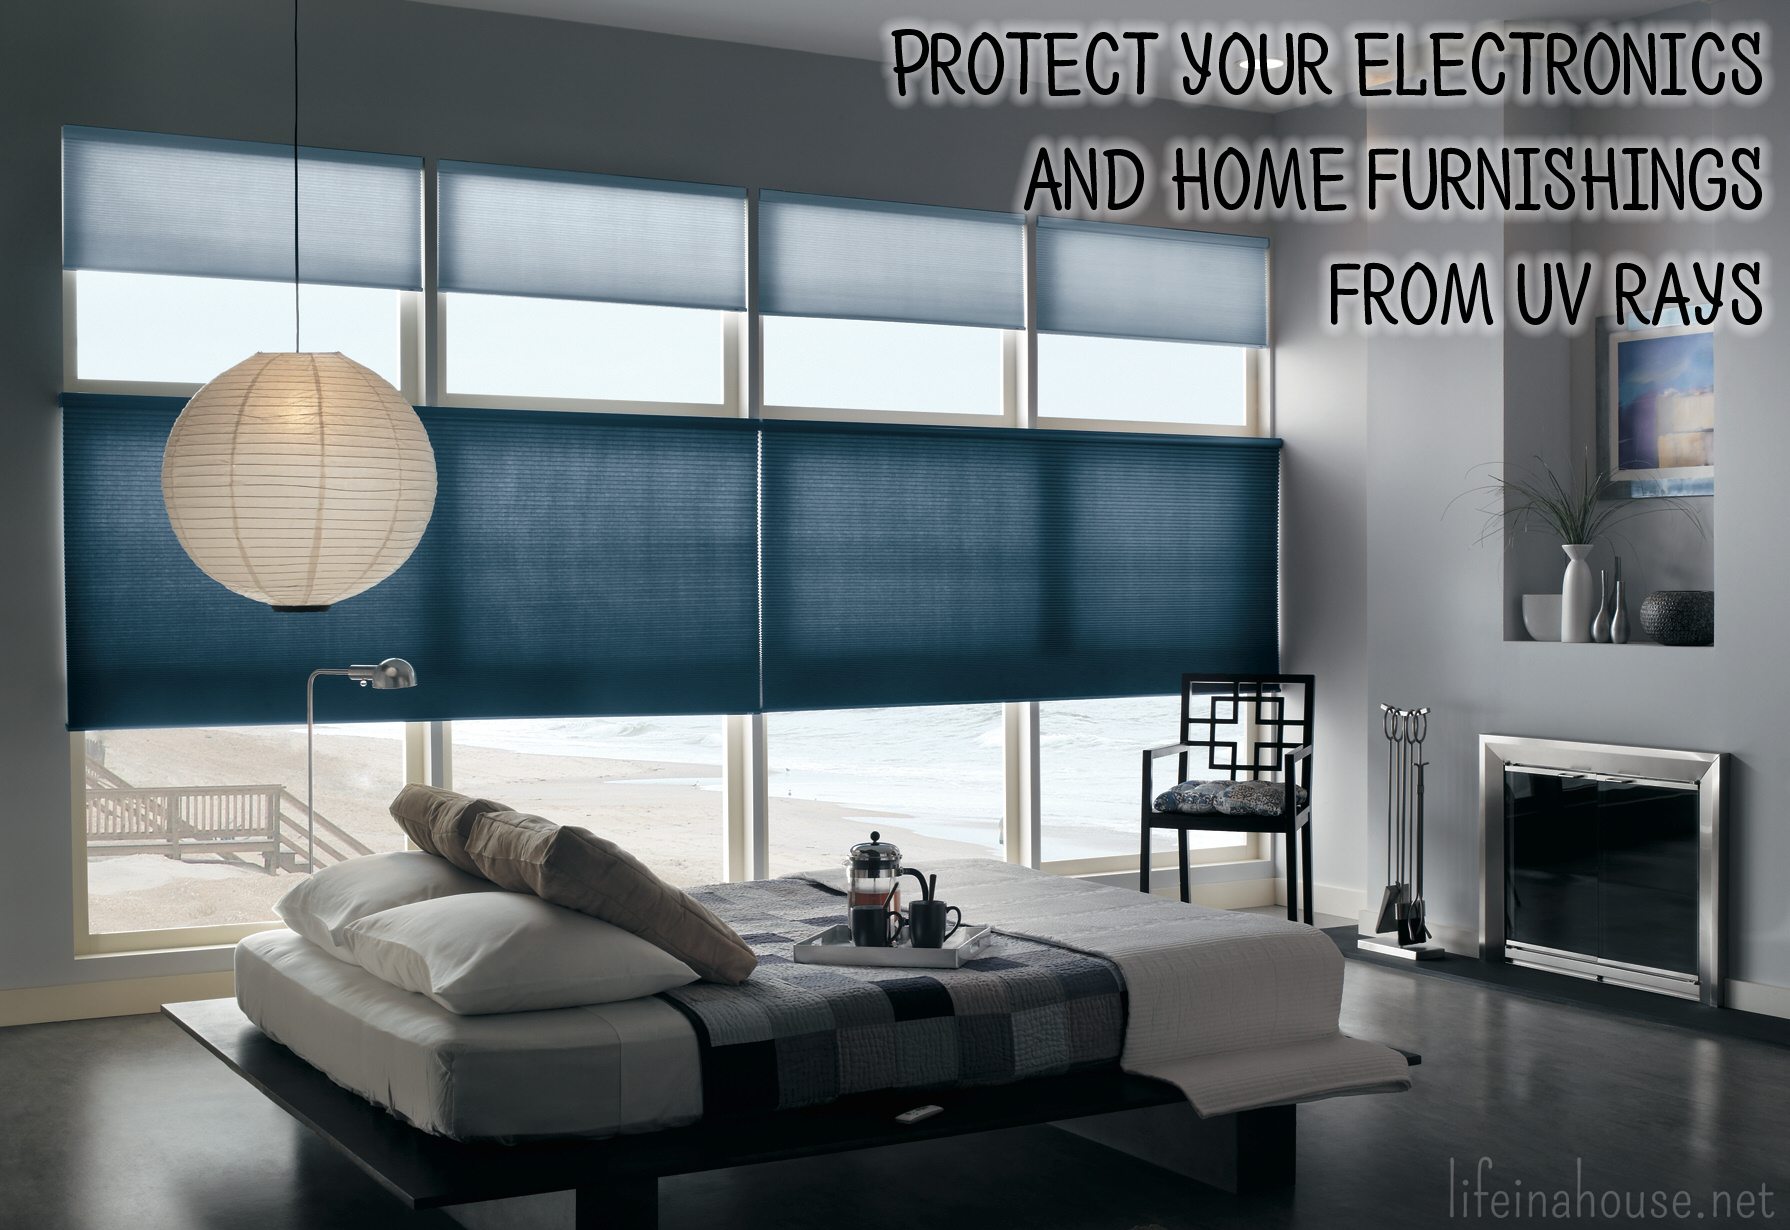 use cellular shades to protect your electronics and furnishings from UV rays